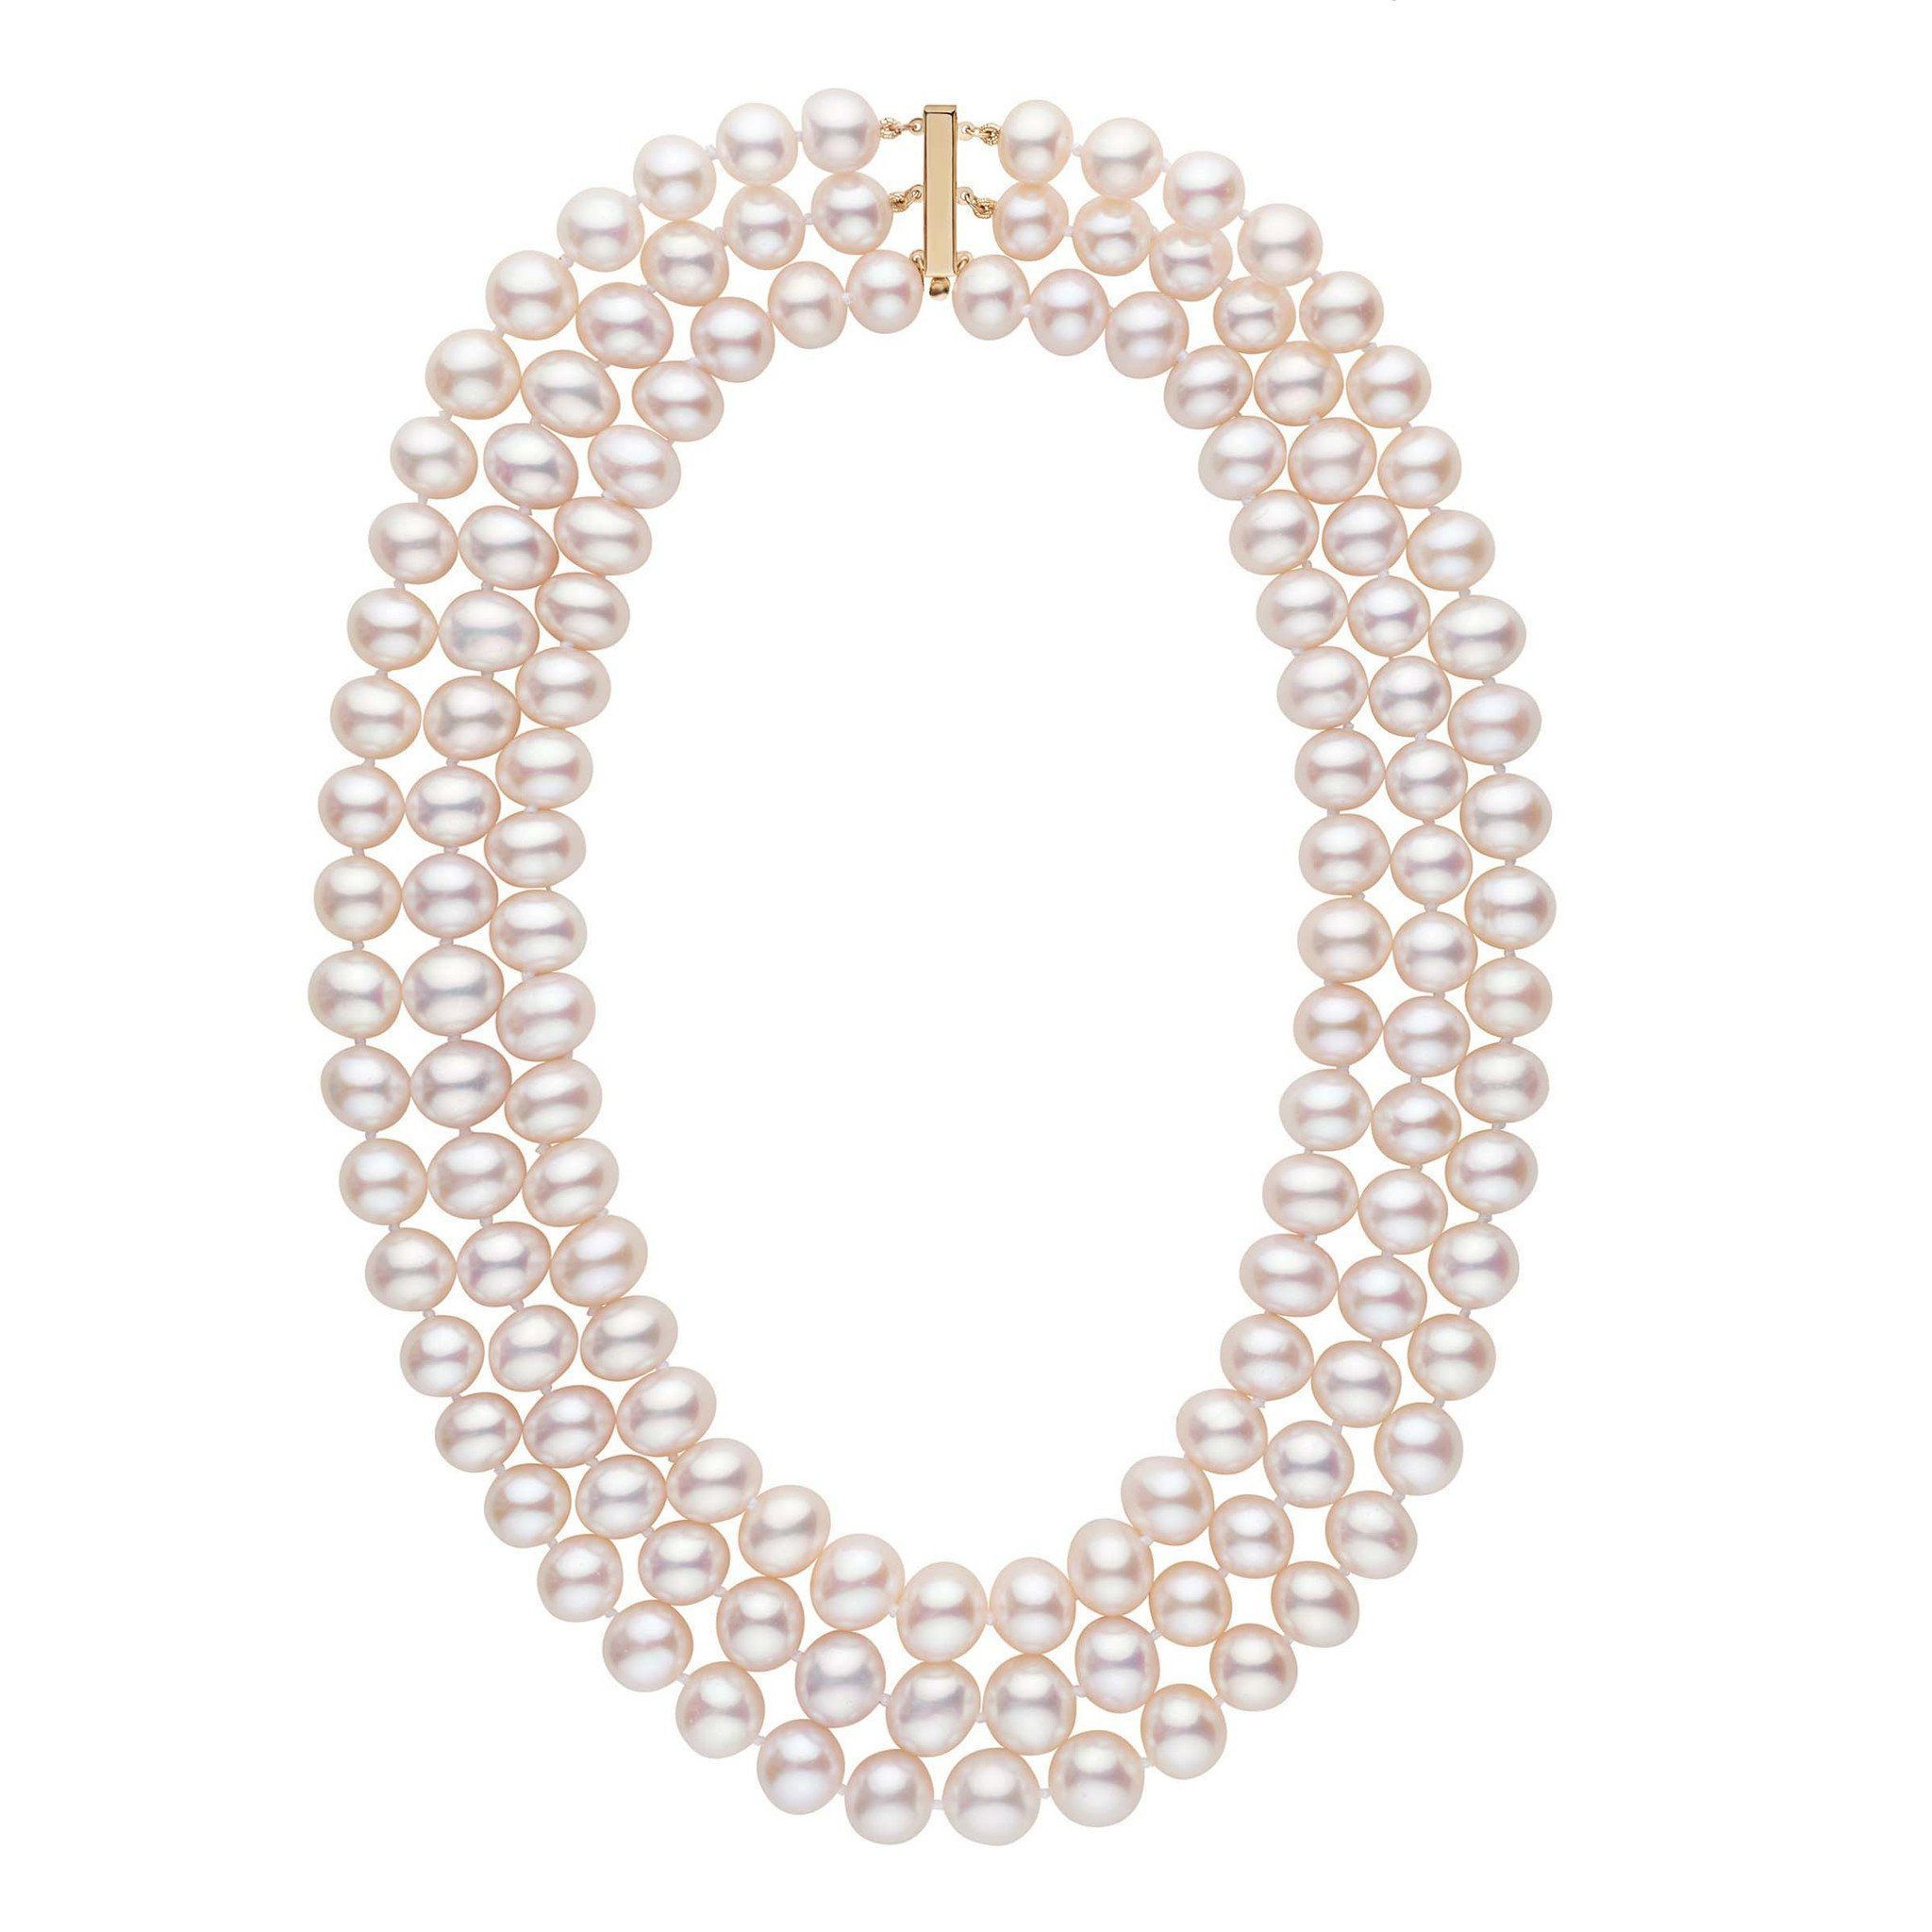 Triple Strand 9.5-10.5 mm AA+ White Freshwater Cultured Pearl Necklace by Pearl Paradise